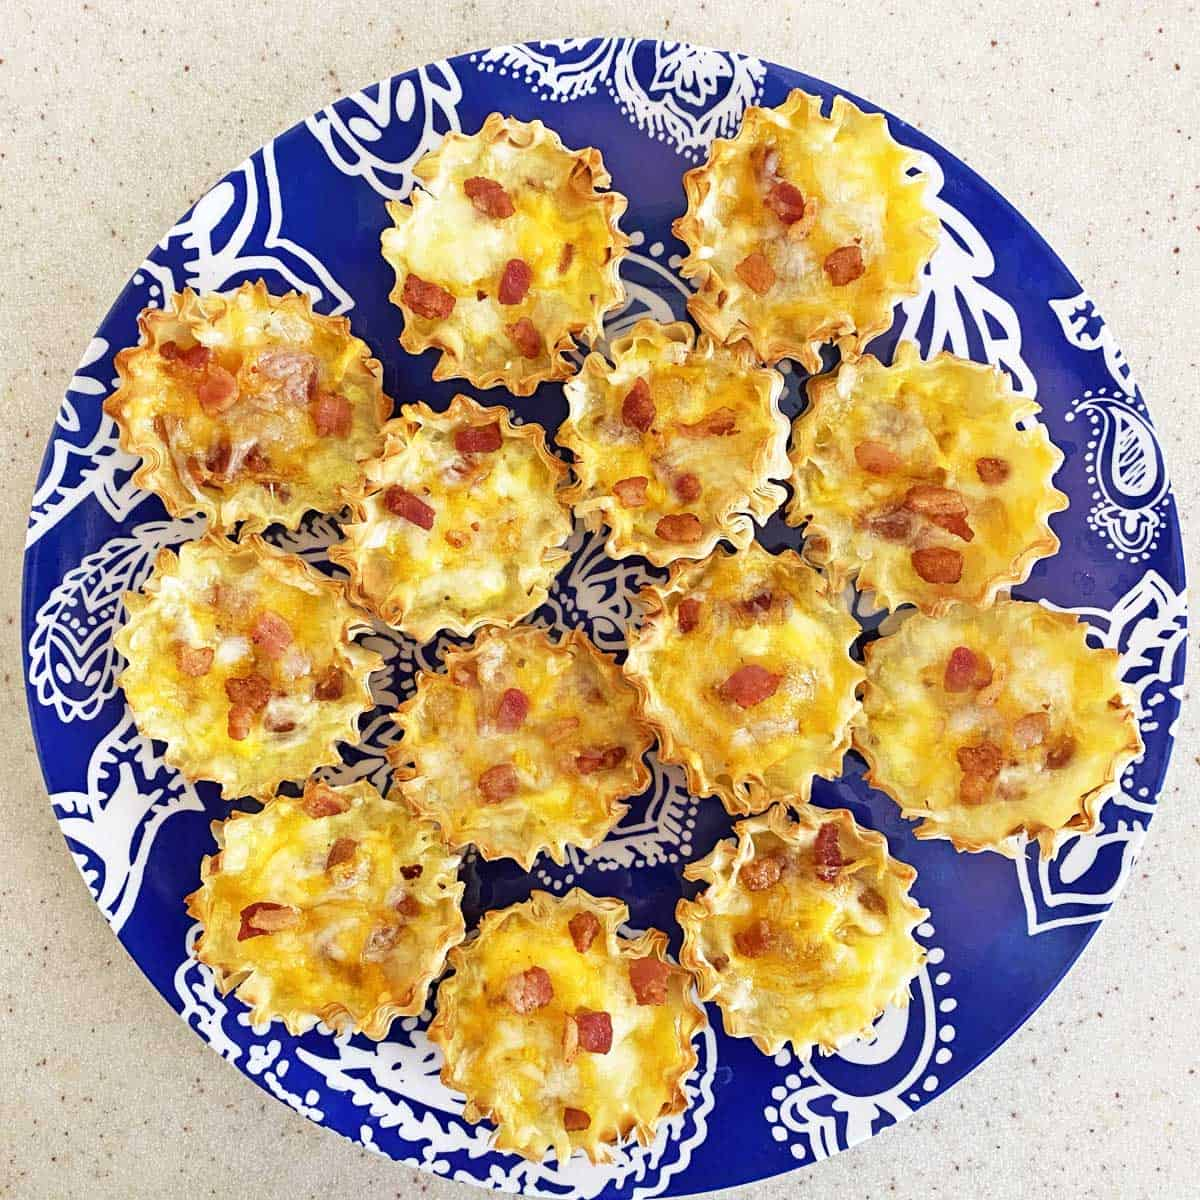 13 baby quiches with cheese and bacon on a blue paisley design plate.